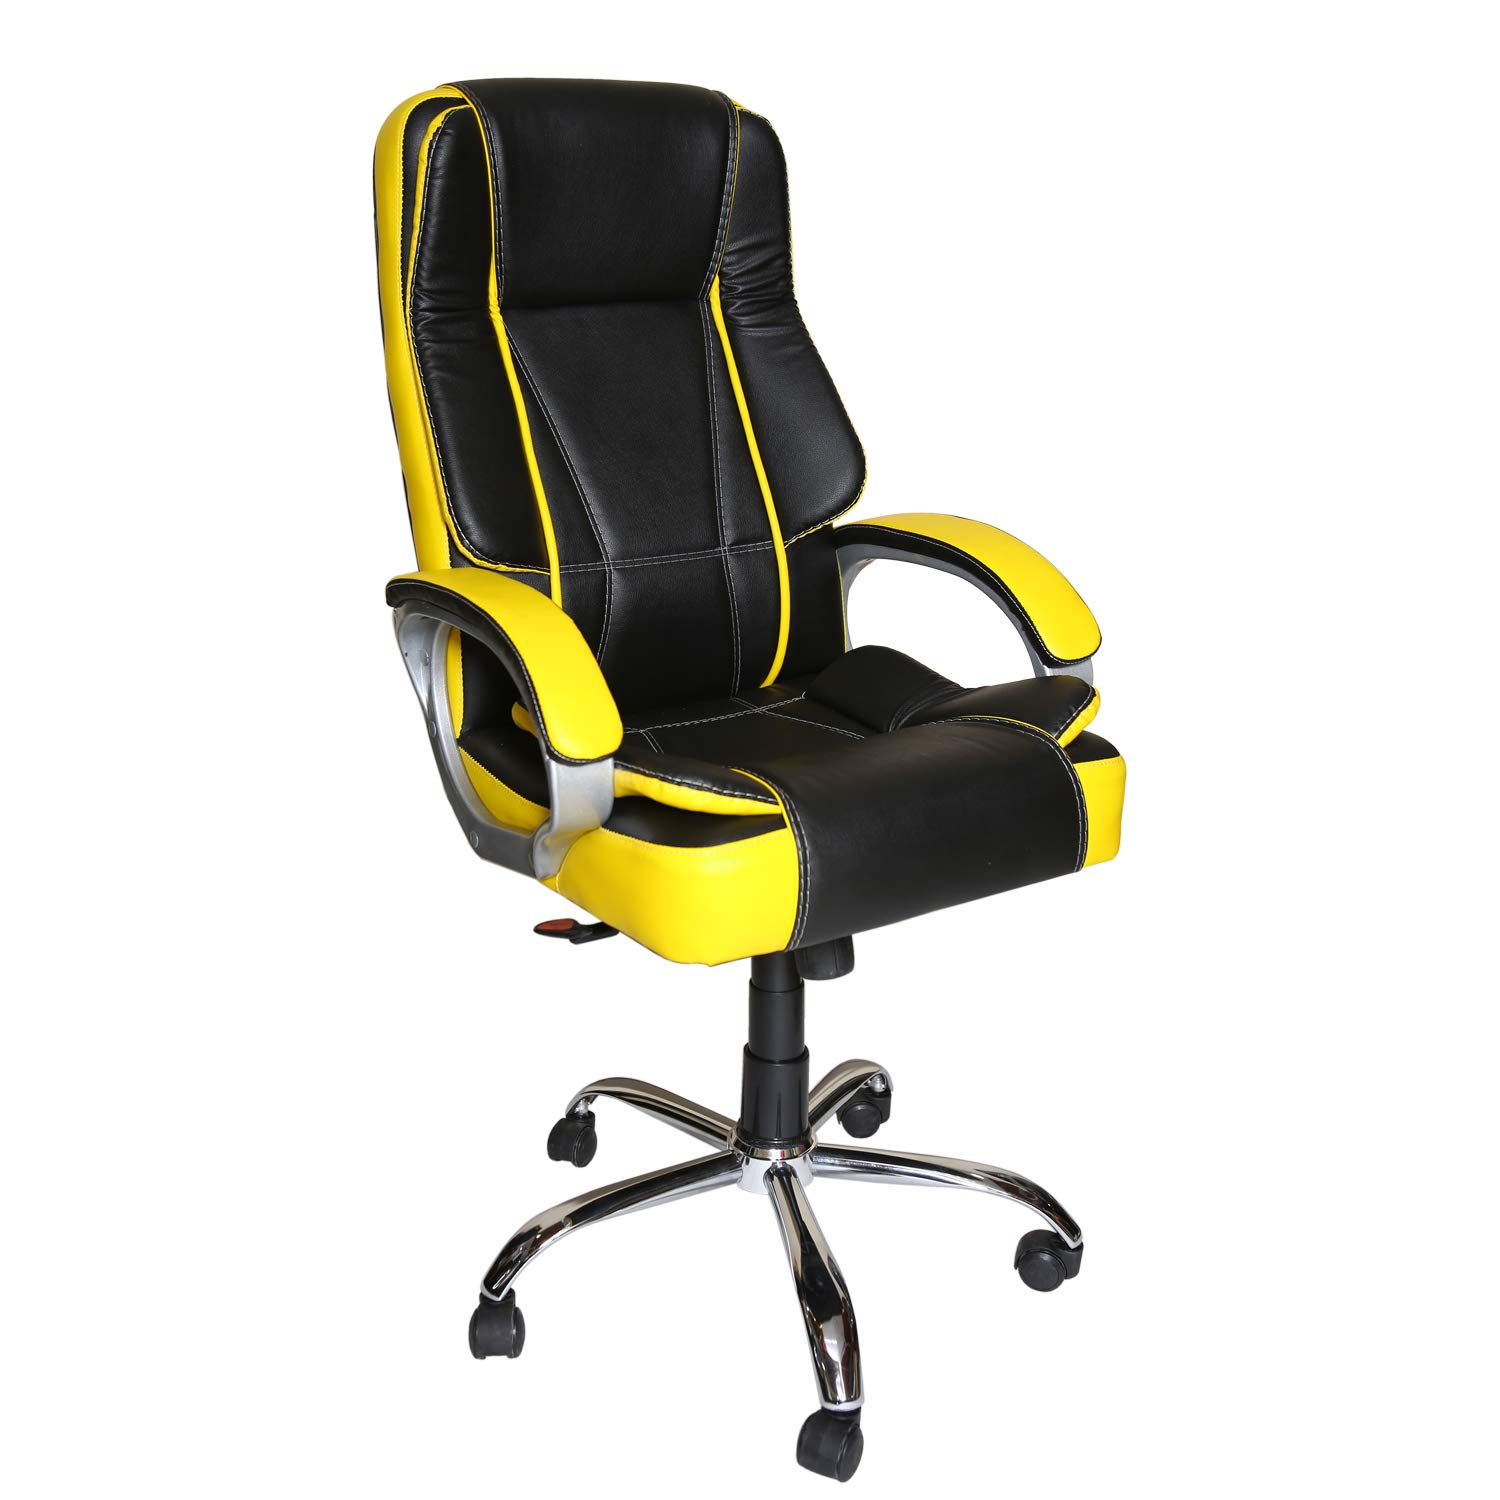 Amazon price history for CELLBELL C52 High Back Gaming Office Chair [Black & Lemon]